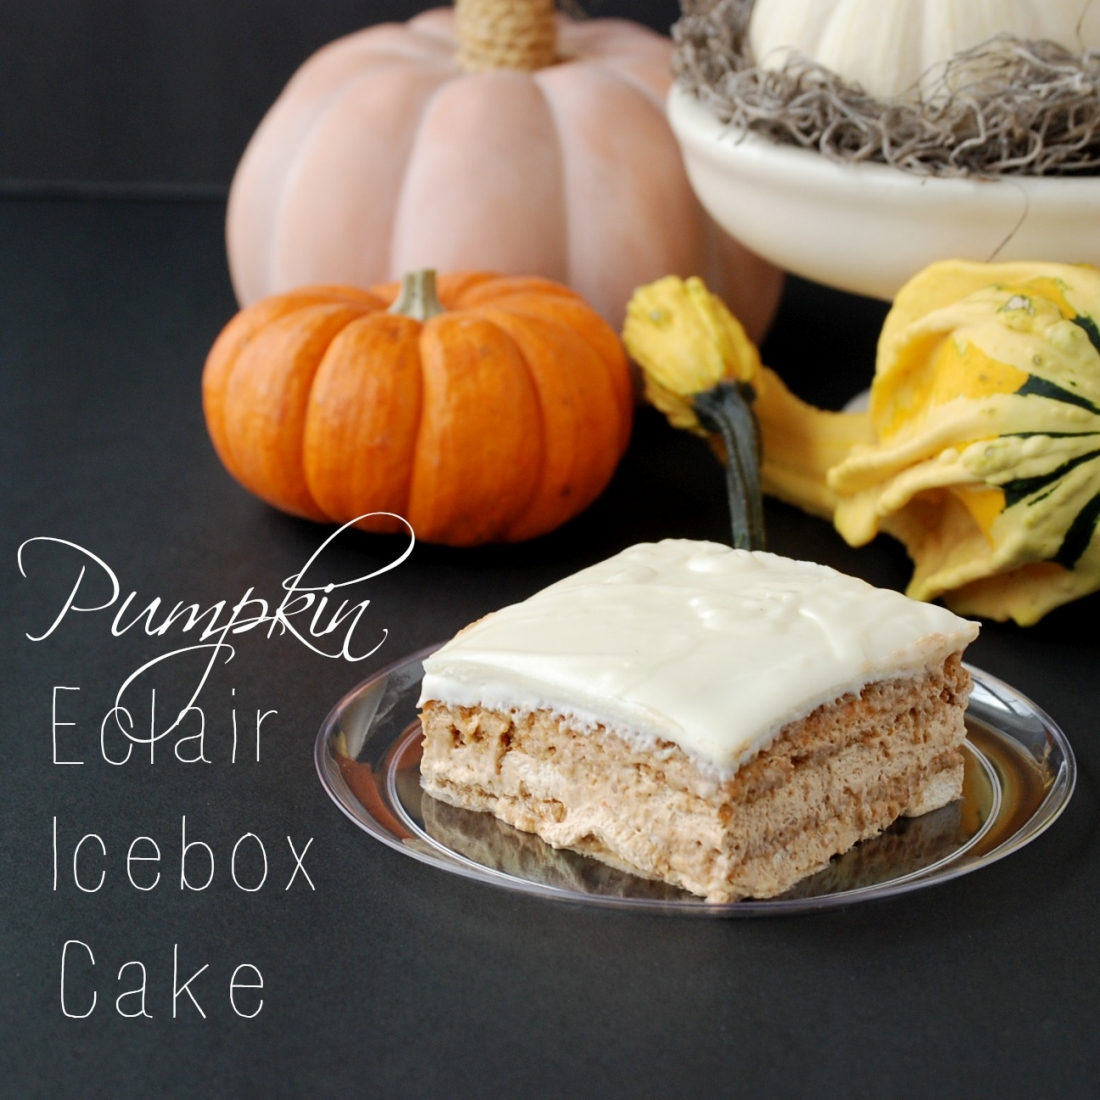 Pumpkin Eclair Icebox Cake: An easy, delicious, no-bake pumpkin icebox cake